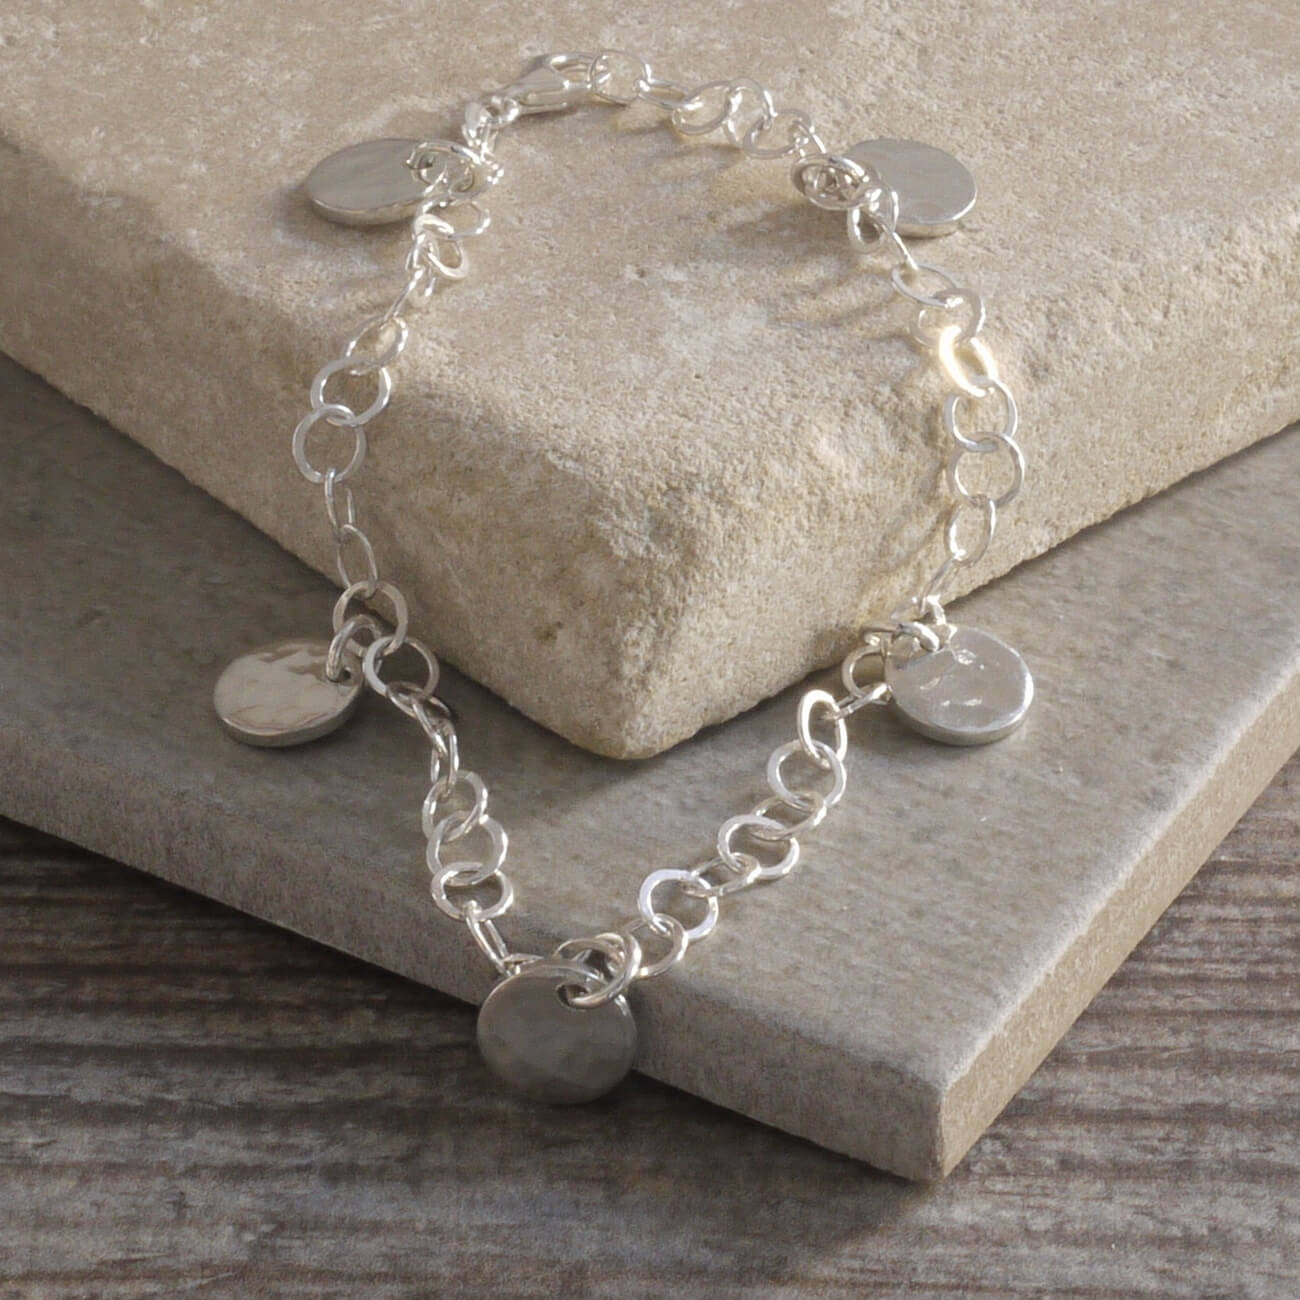 Silver bracelet with tin charms